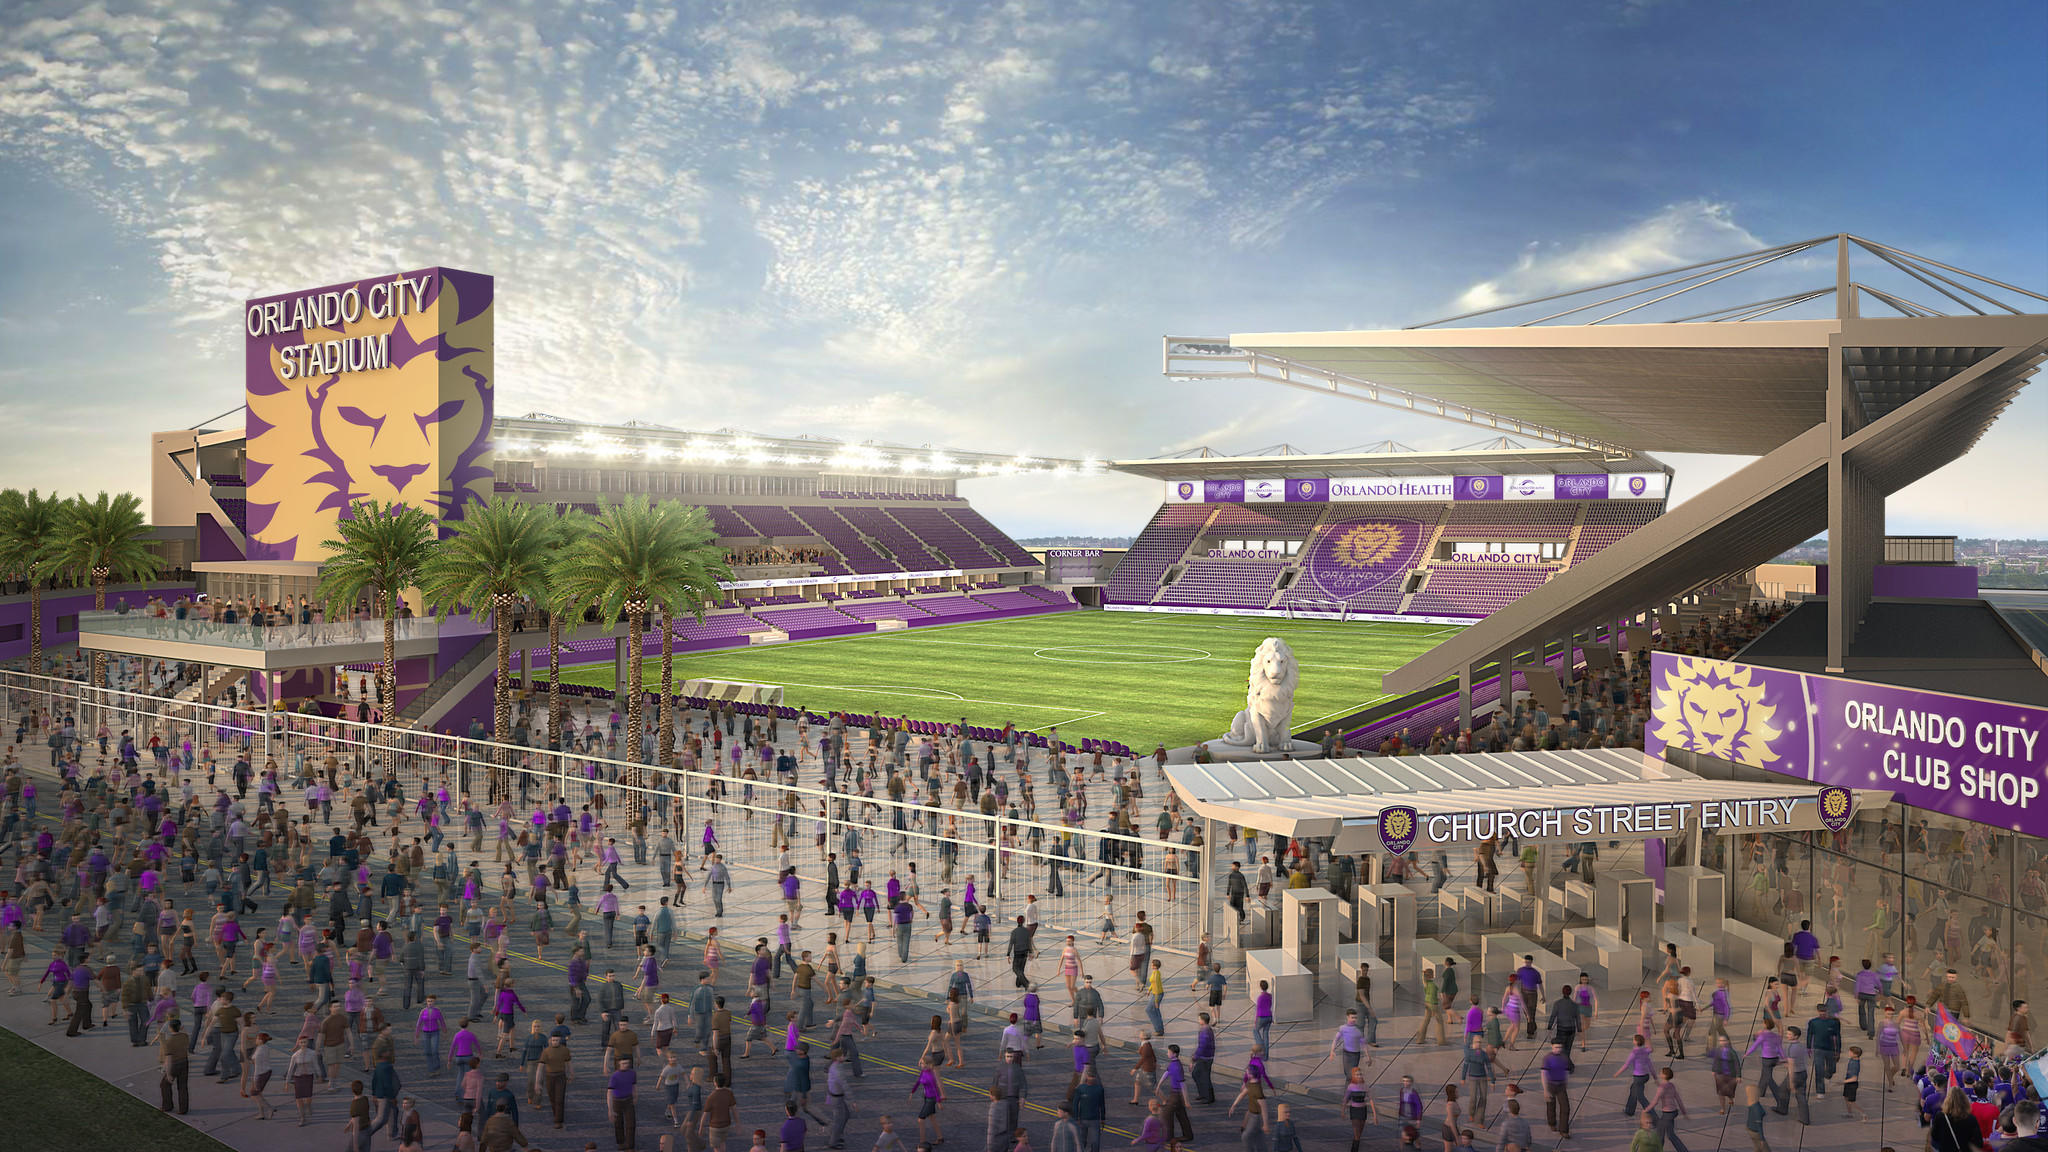 Orlando City SC President & Founder Phil Rawlins, City of Orlando Mayor Buddy Dyer and Orange County Mayor Teresa Jacobs unveiled renderings for Orlando's new downtown Major League Soccer stadium to the public on Tuesday, June 10, 2014.